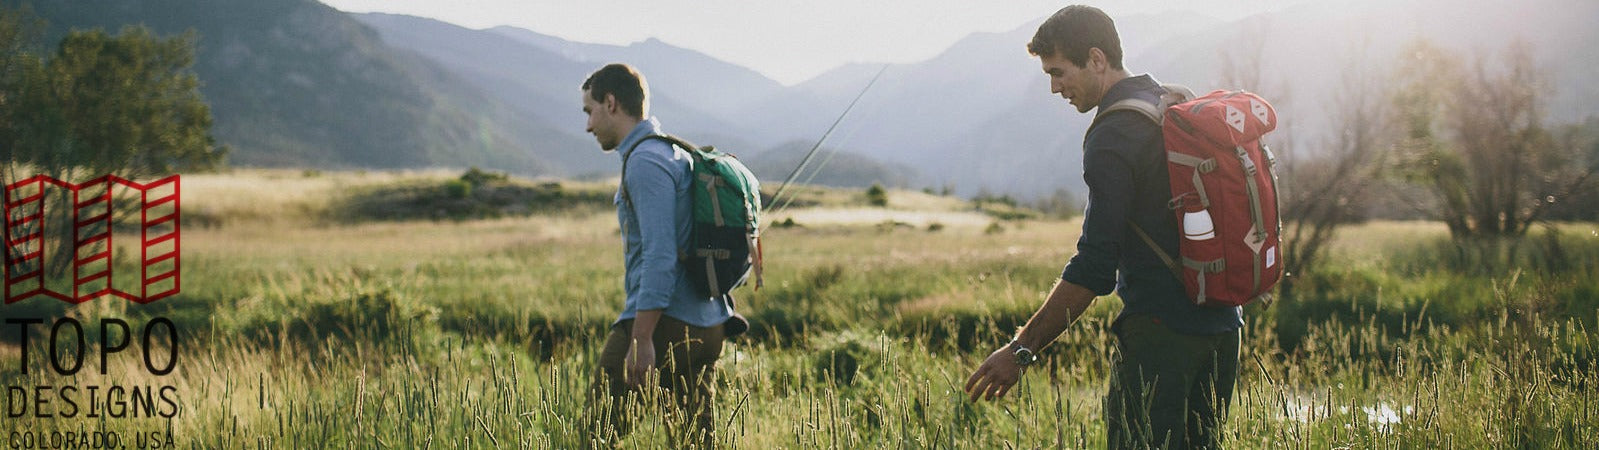 Exploring the Wild with Topo Designs